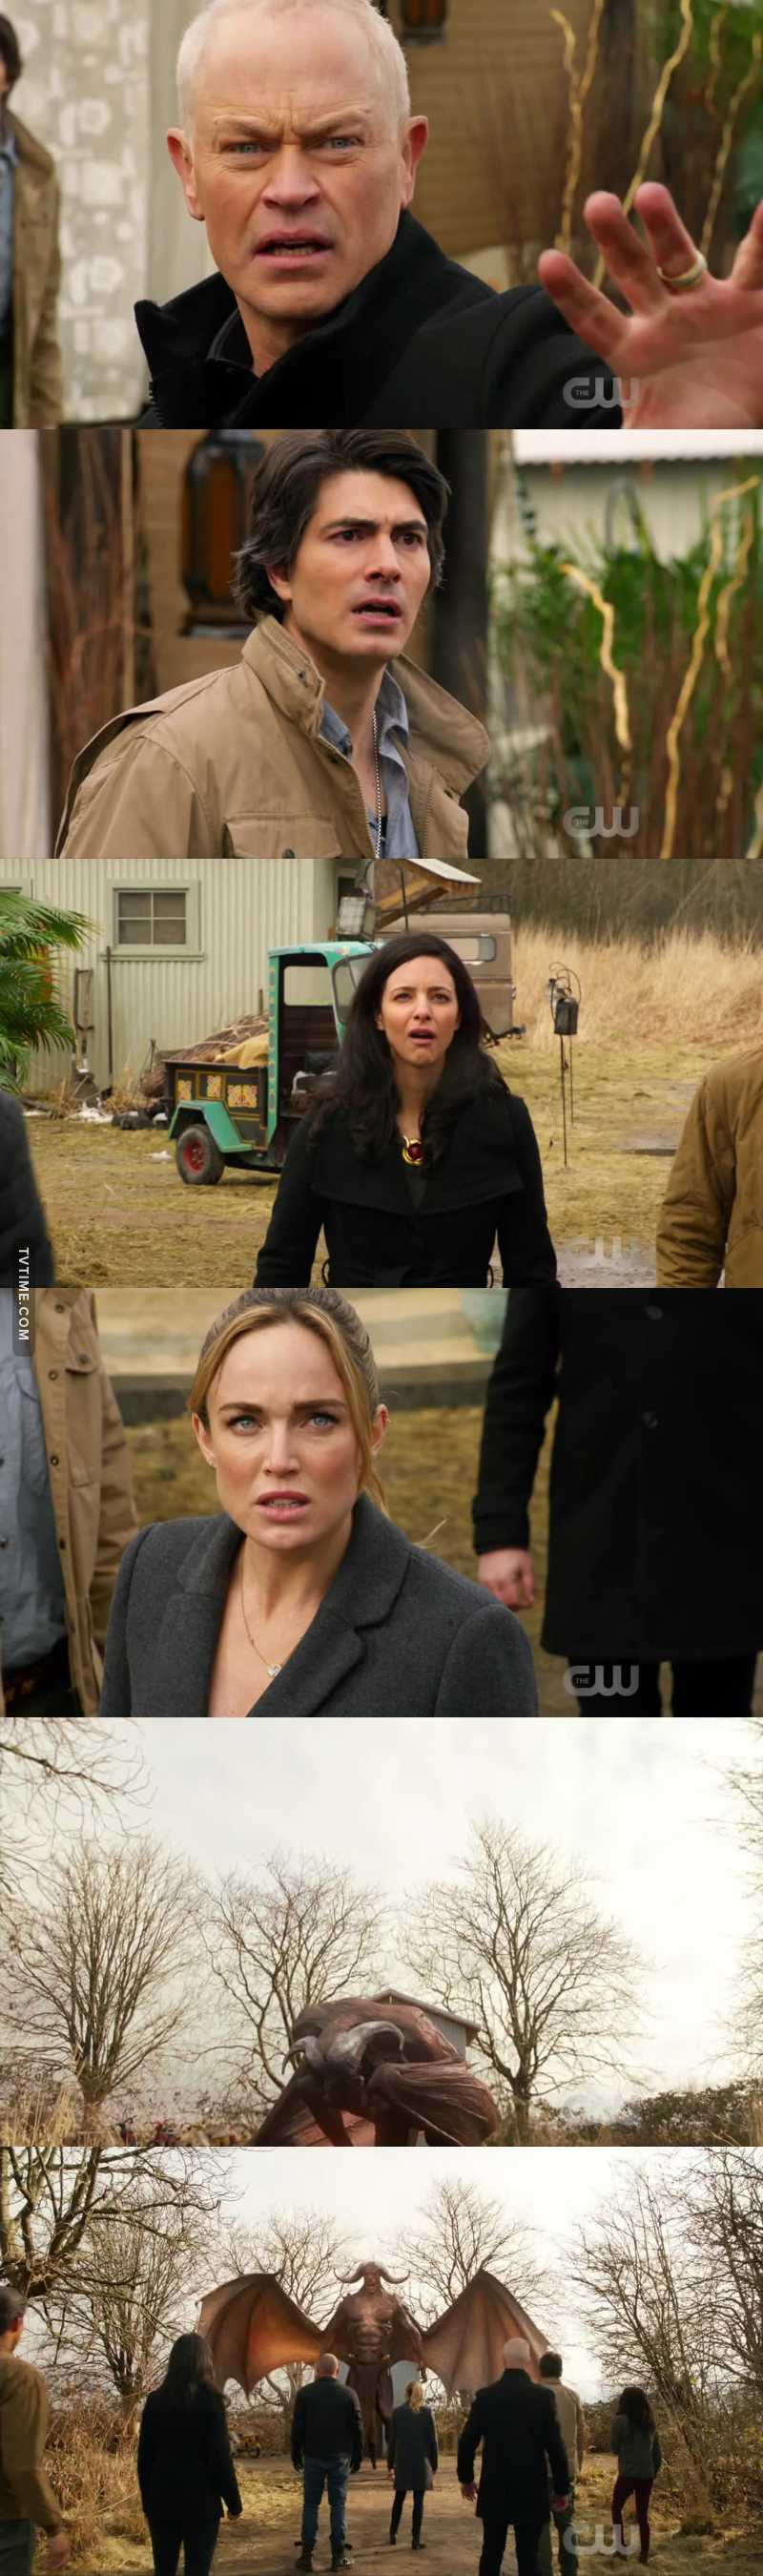 THEIR FACIAL EXPRESSIONS DESCRIBE EXACTLY HOW MINE WERE GOING WHEN NORA WAS TRANSFORMING   MALLUS!... BRUH!!!😱😵😲